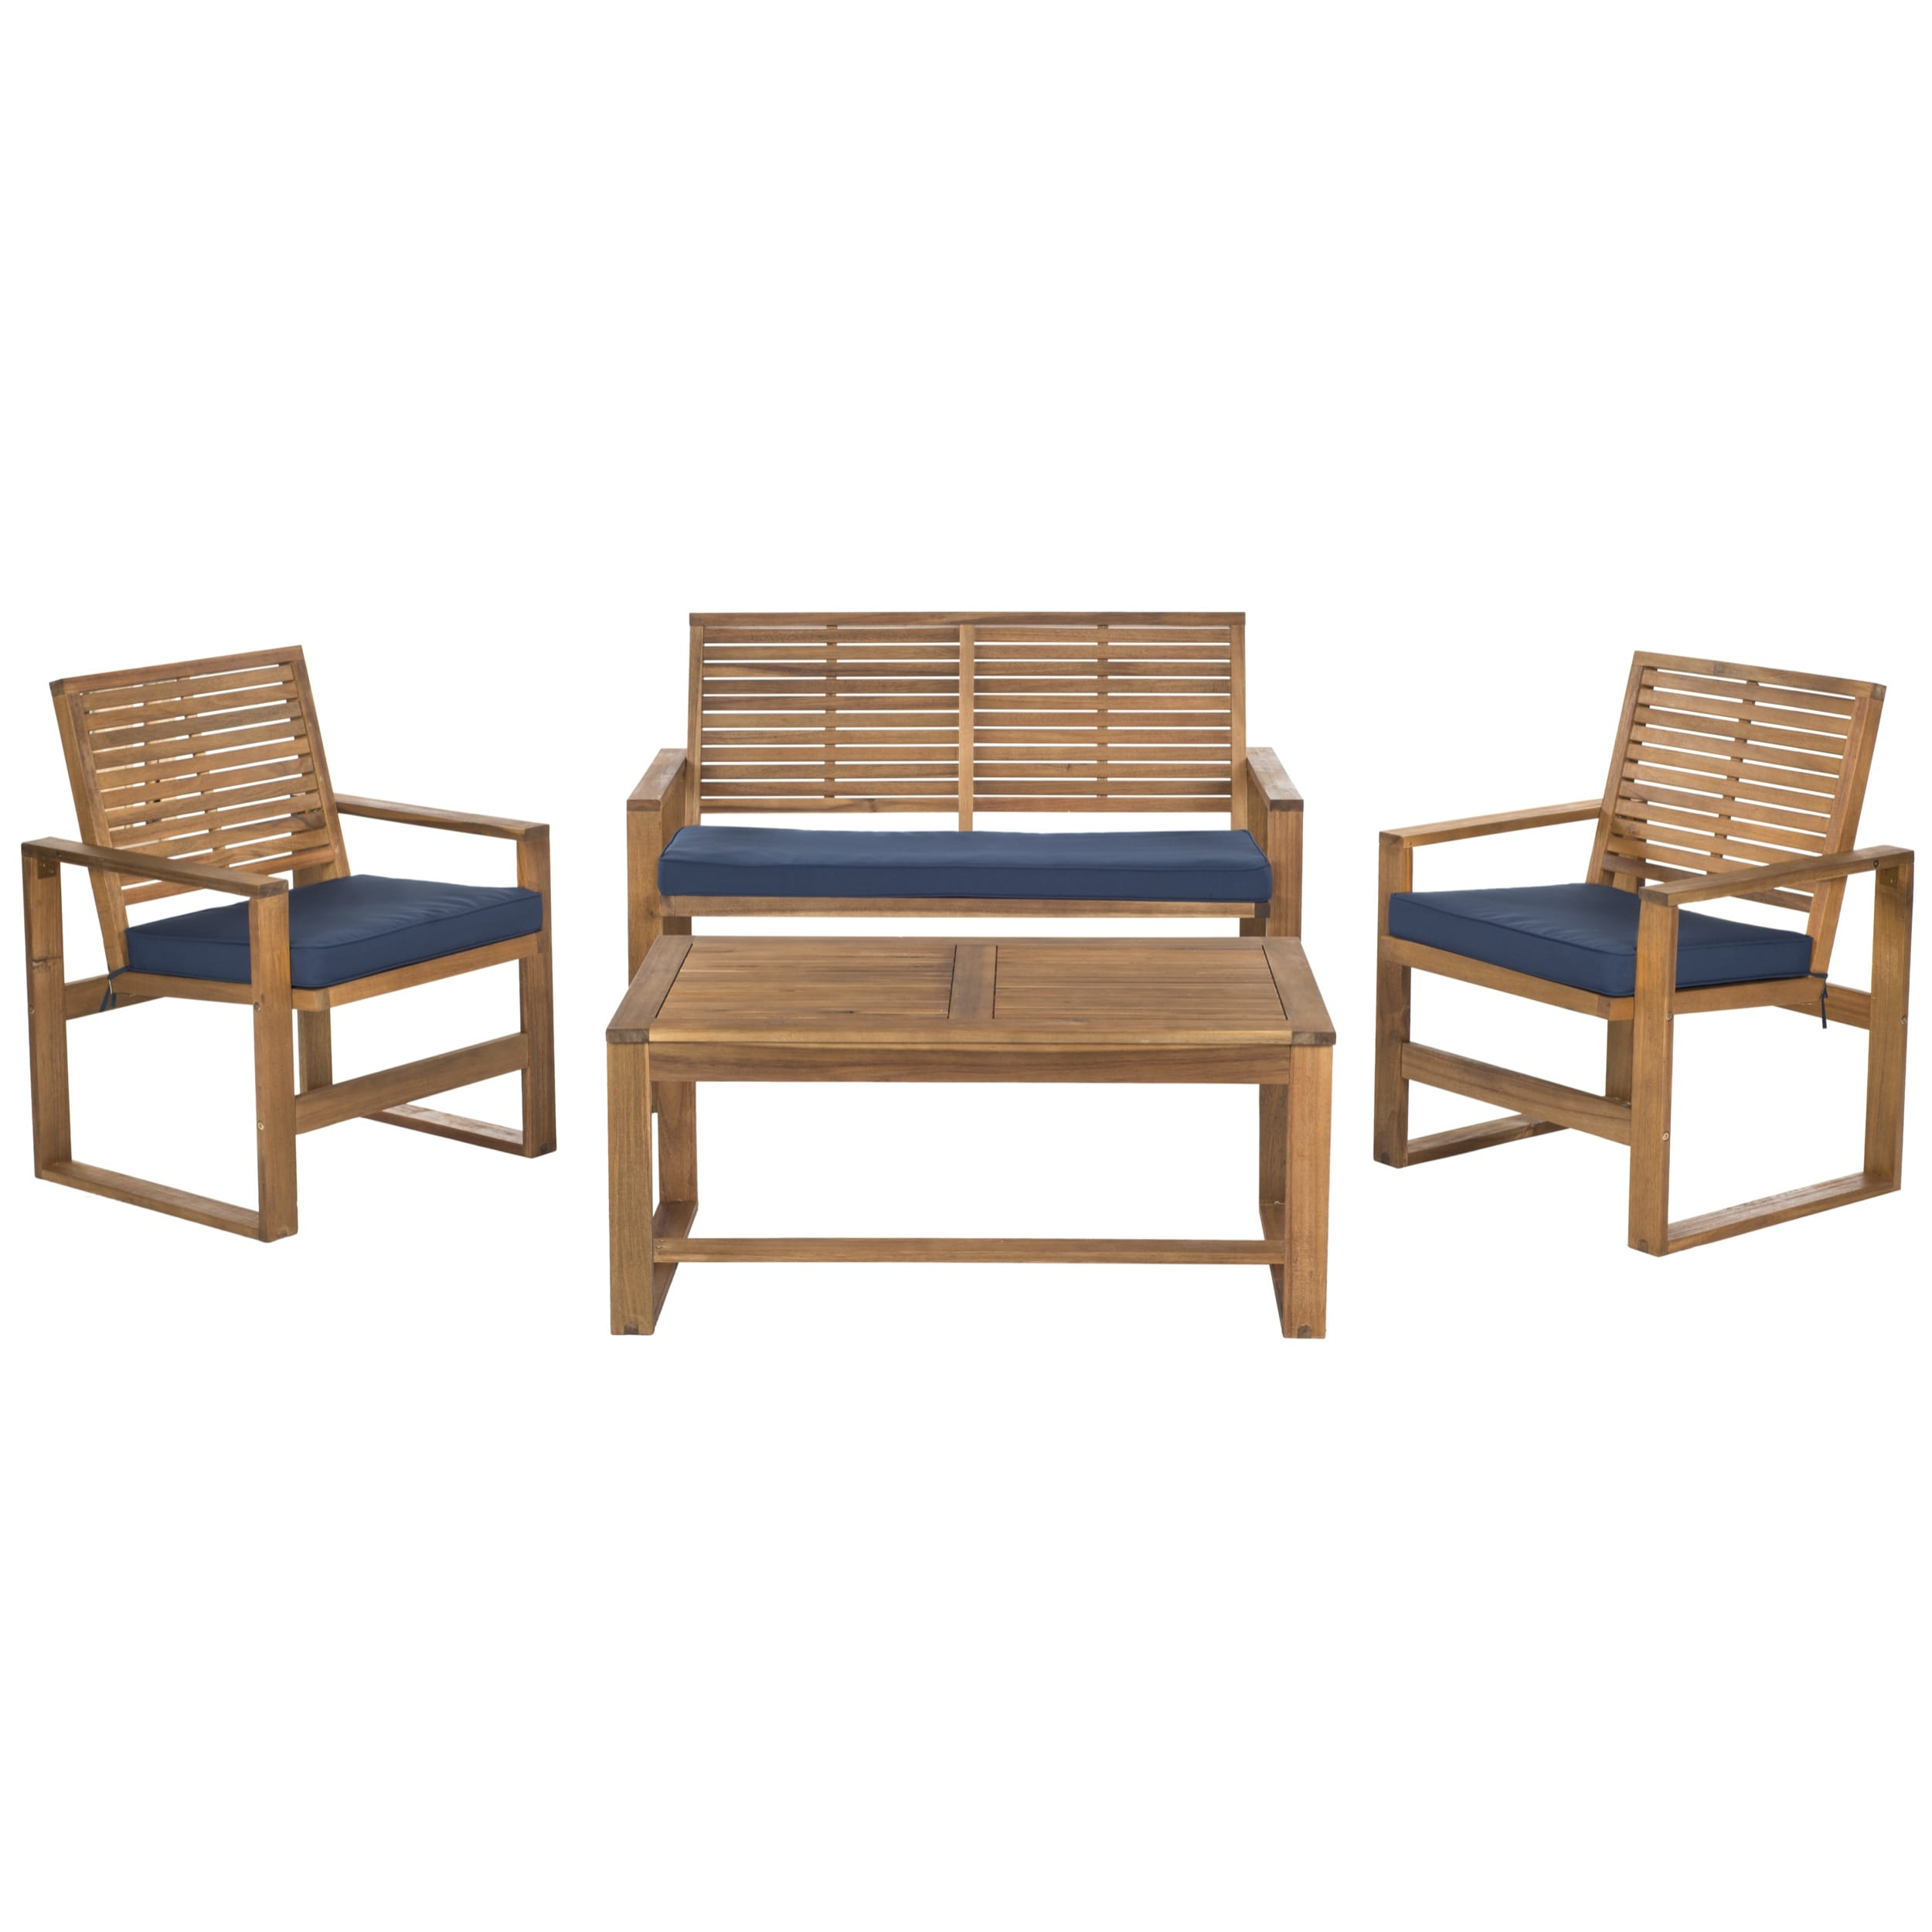 Safavieh Wood Patio Furniture Overstockcom Buy Sofas Chairs